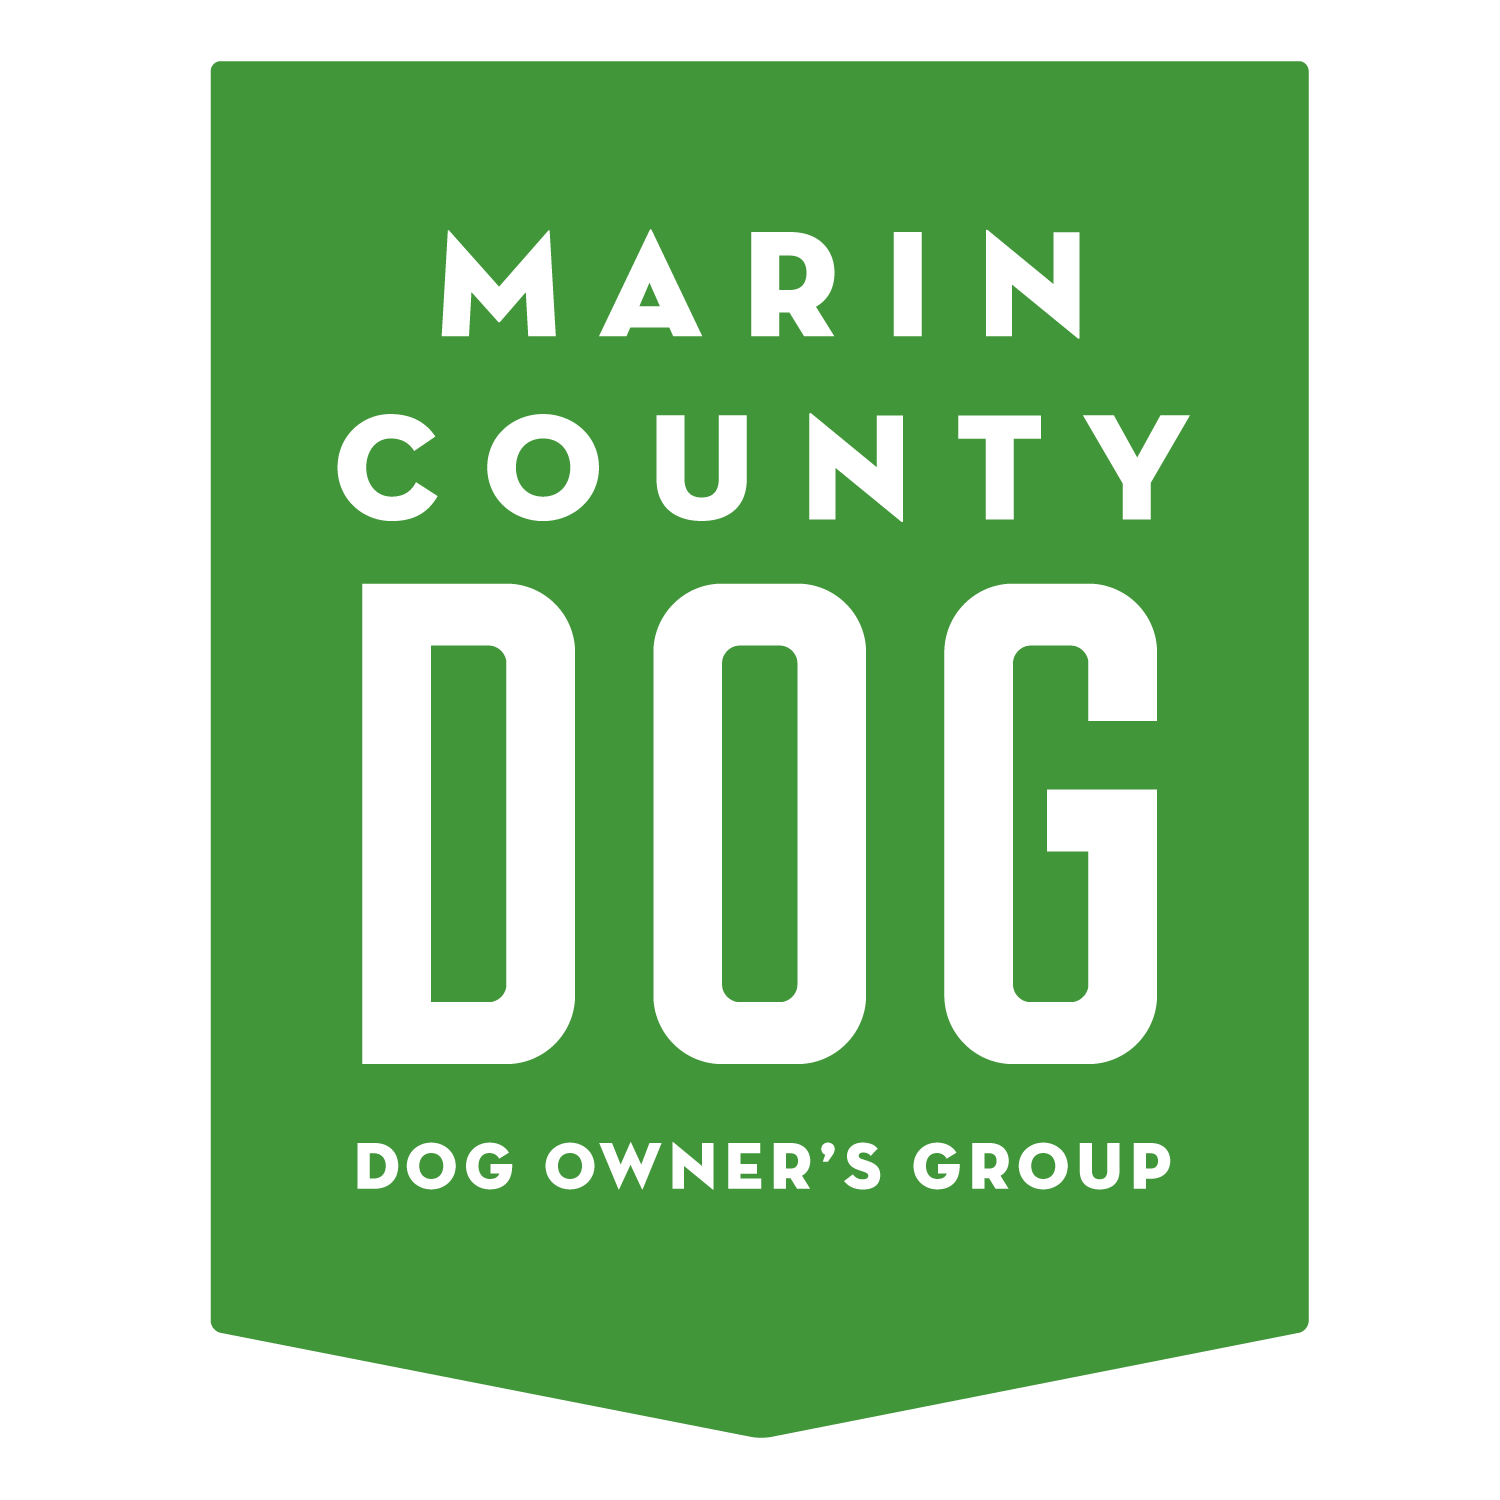 Marin County Dog | Dog Owner's Group